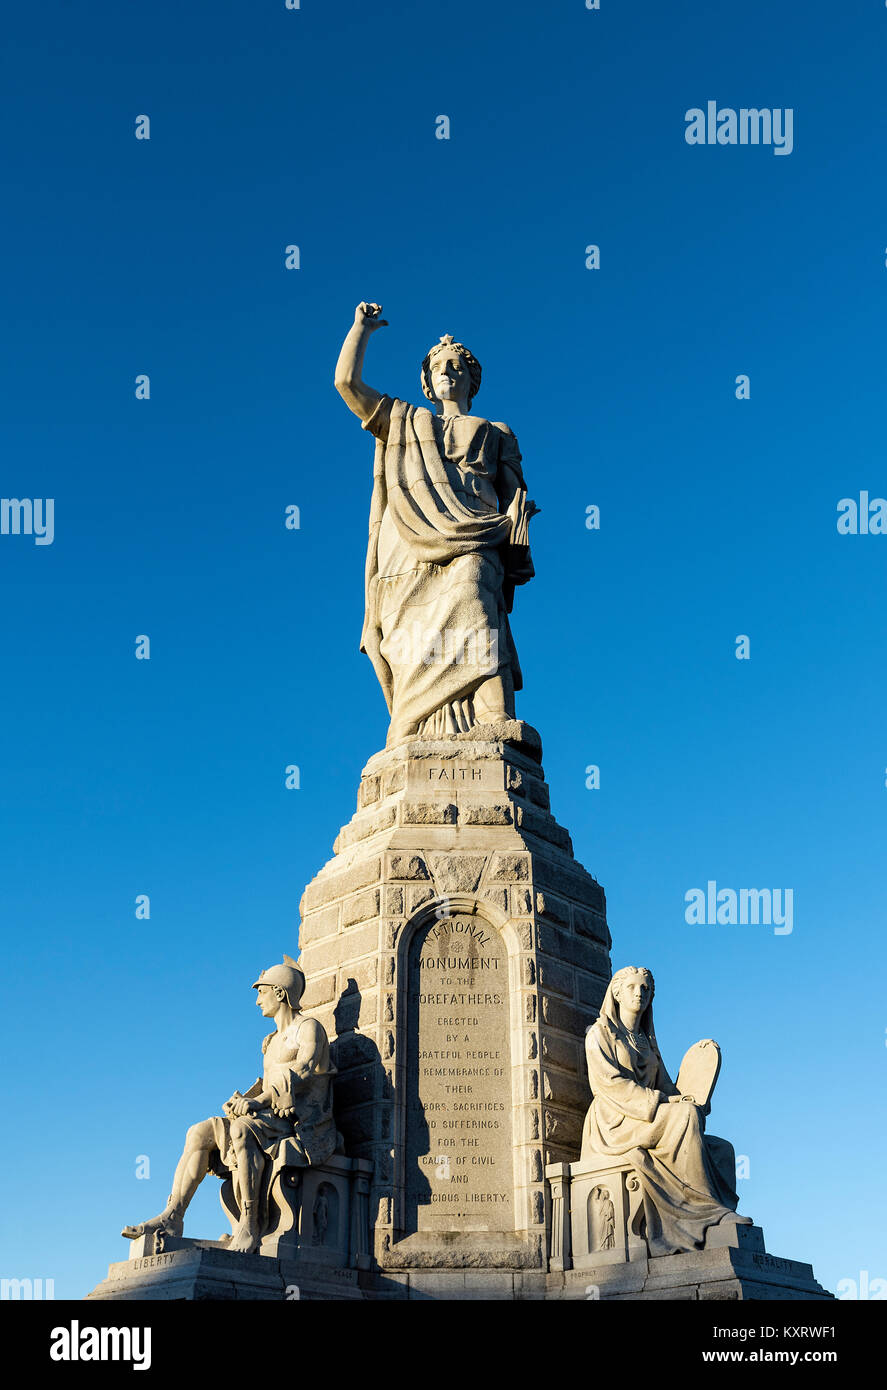 The National Monument to the Forefathers, formerly known as the Pilgrim Monument, commemorates the Mayflower Pilgrims, Stock Photo